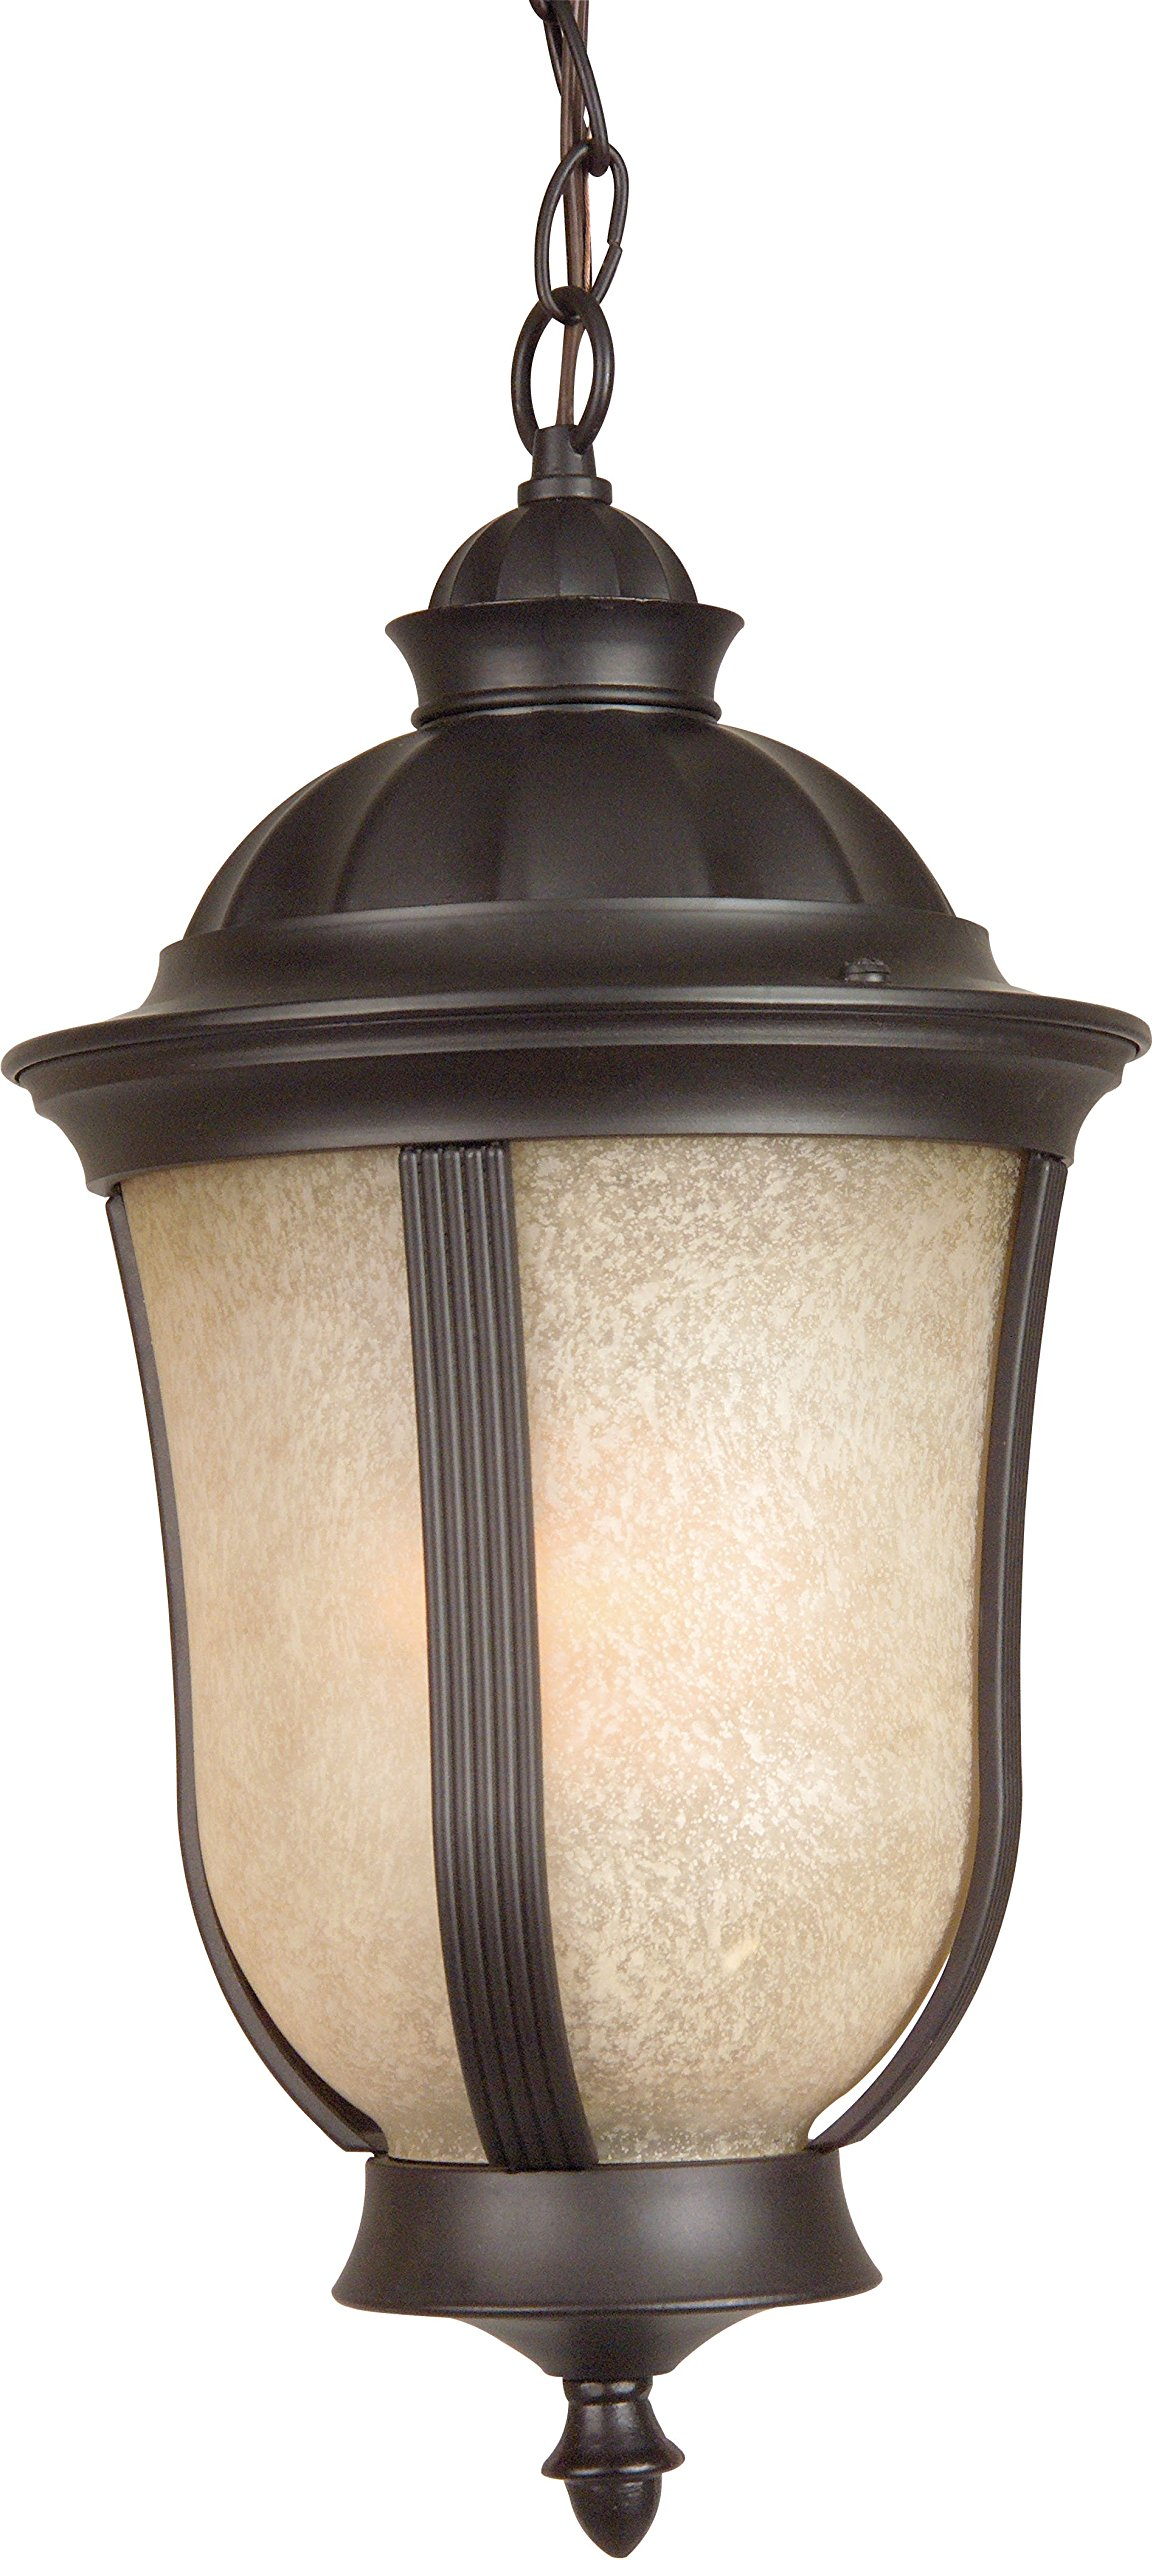 Craftmade Z6111-92-NRG Hanging Lantern with Antique Scavo Glass Shades, Oiled Bronze Finish by Craftmade